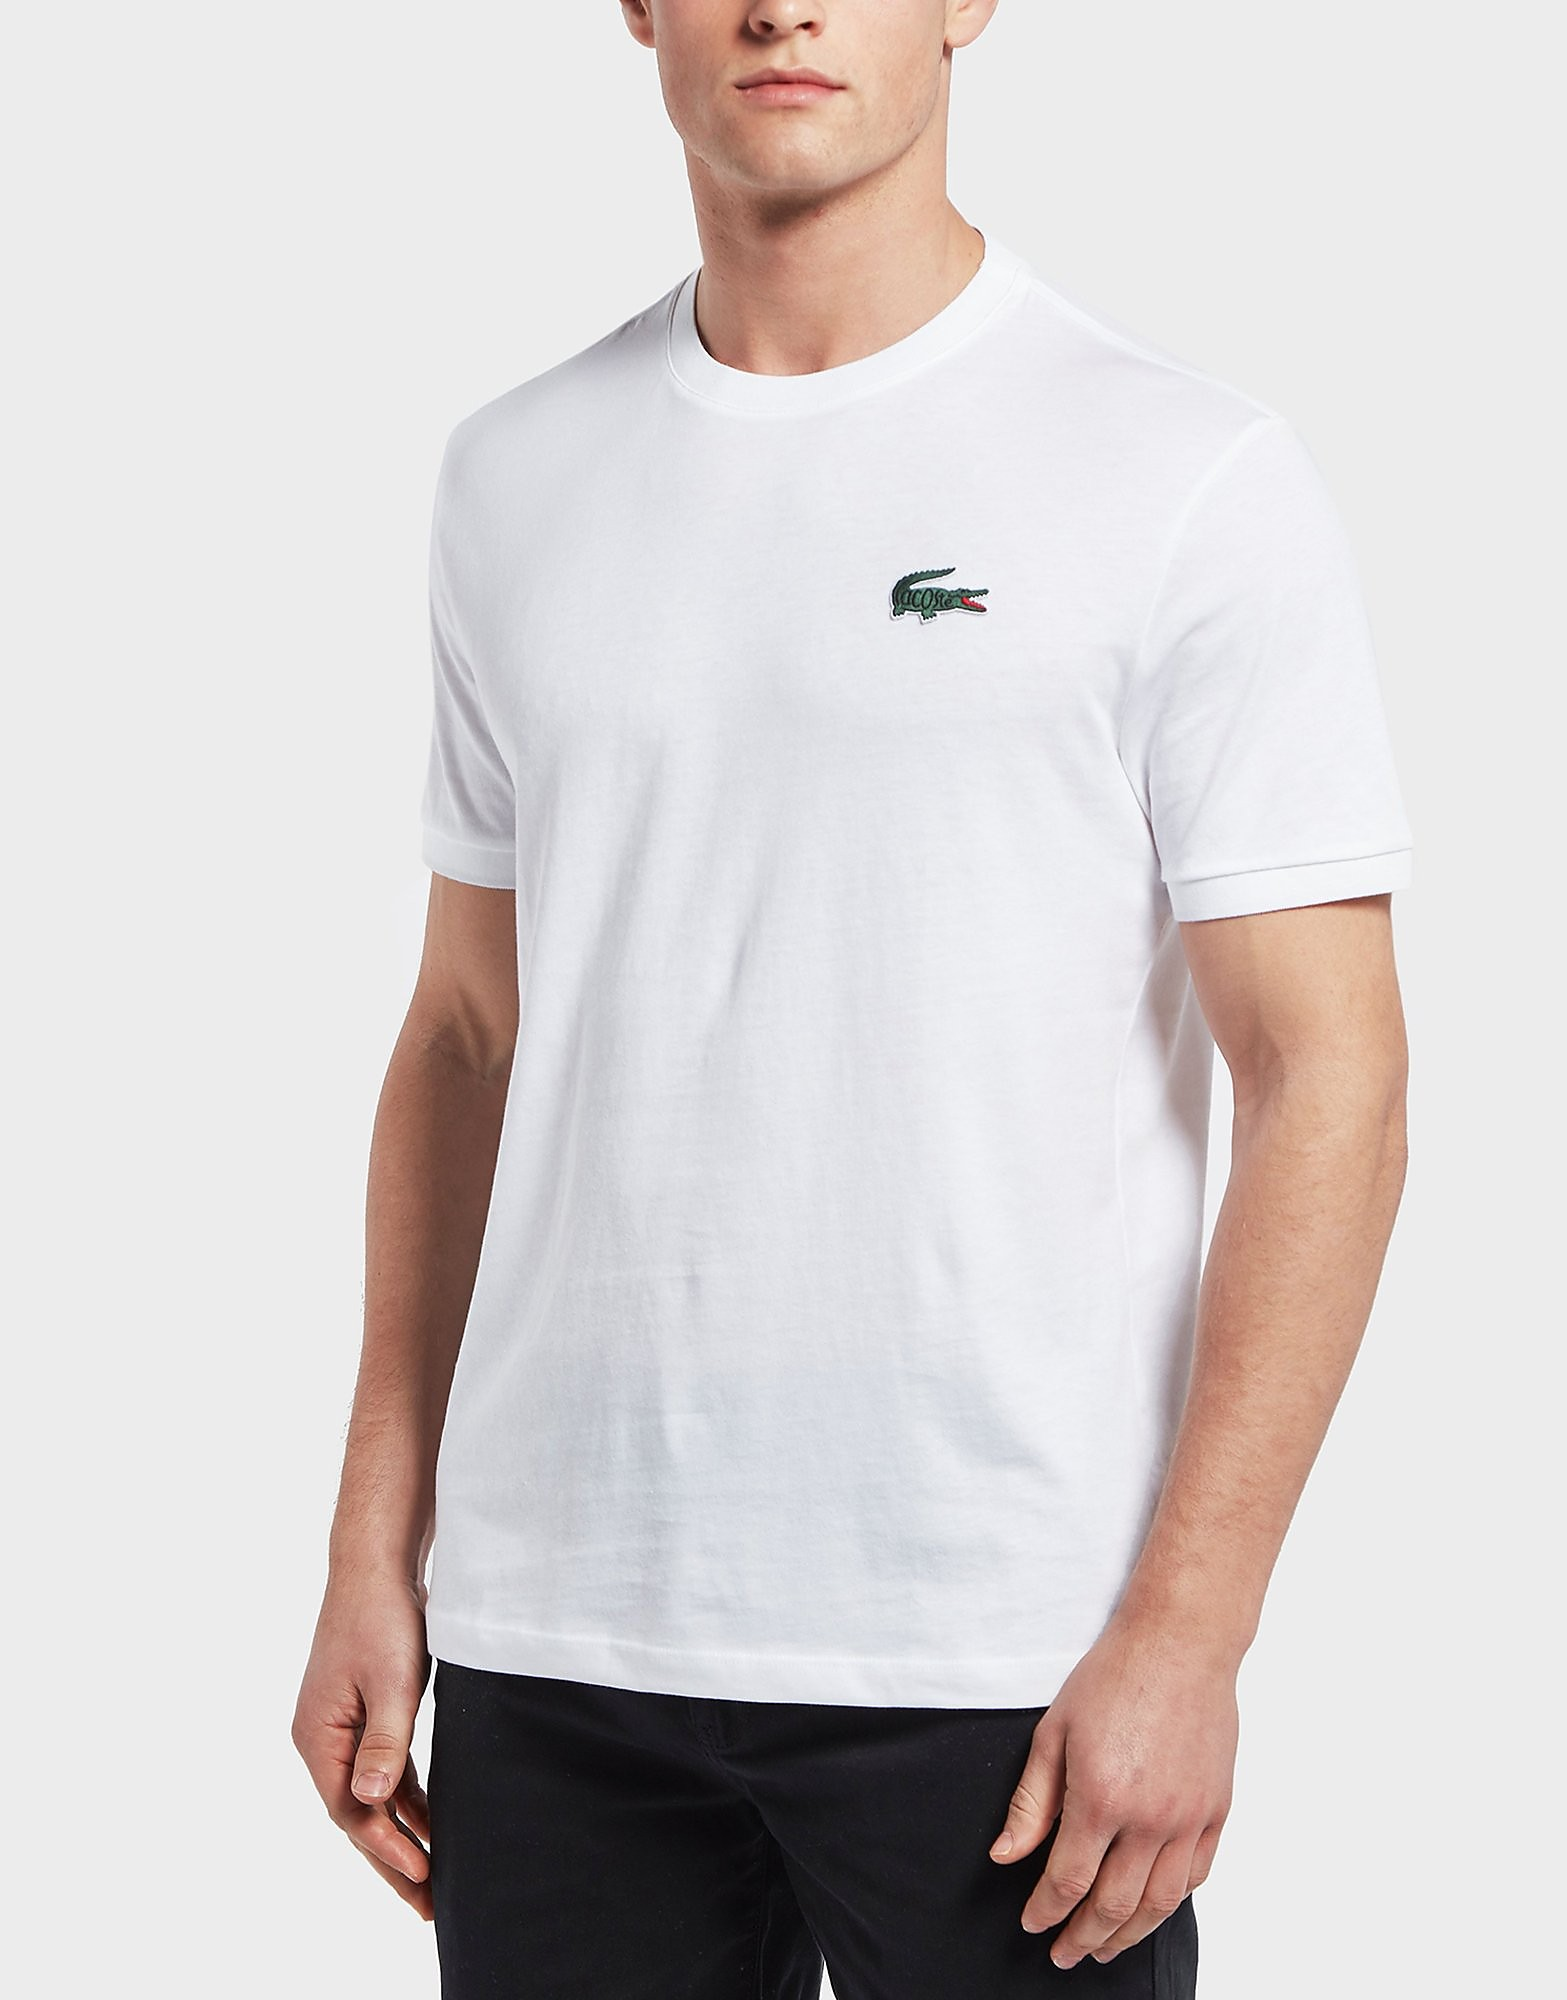 Lacoste Big Croc Logo Short Sleeve T-Shirt